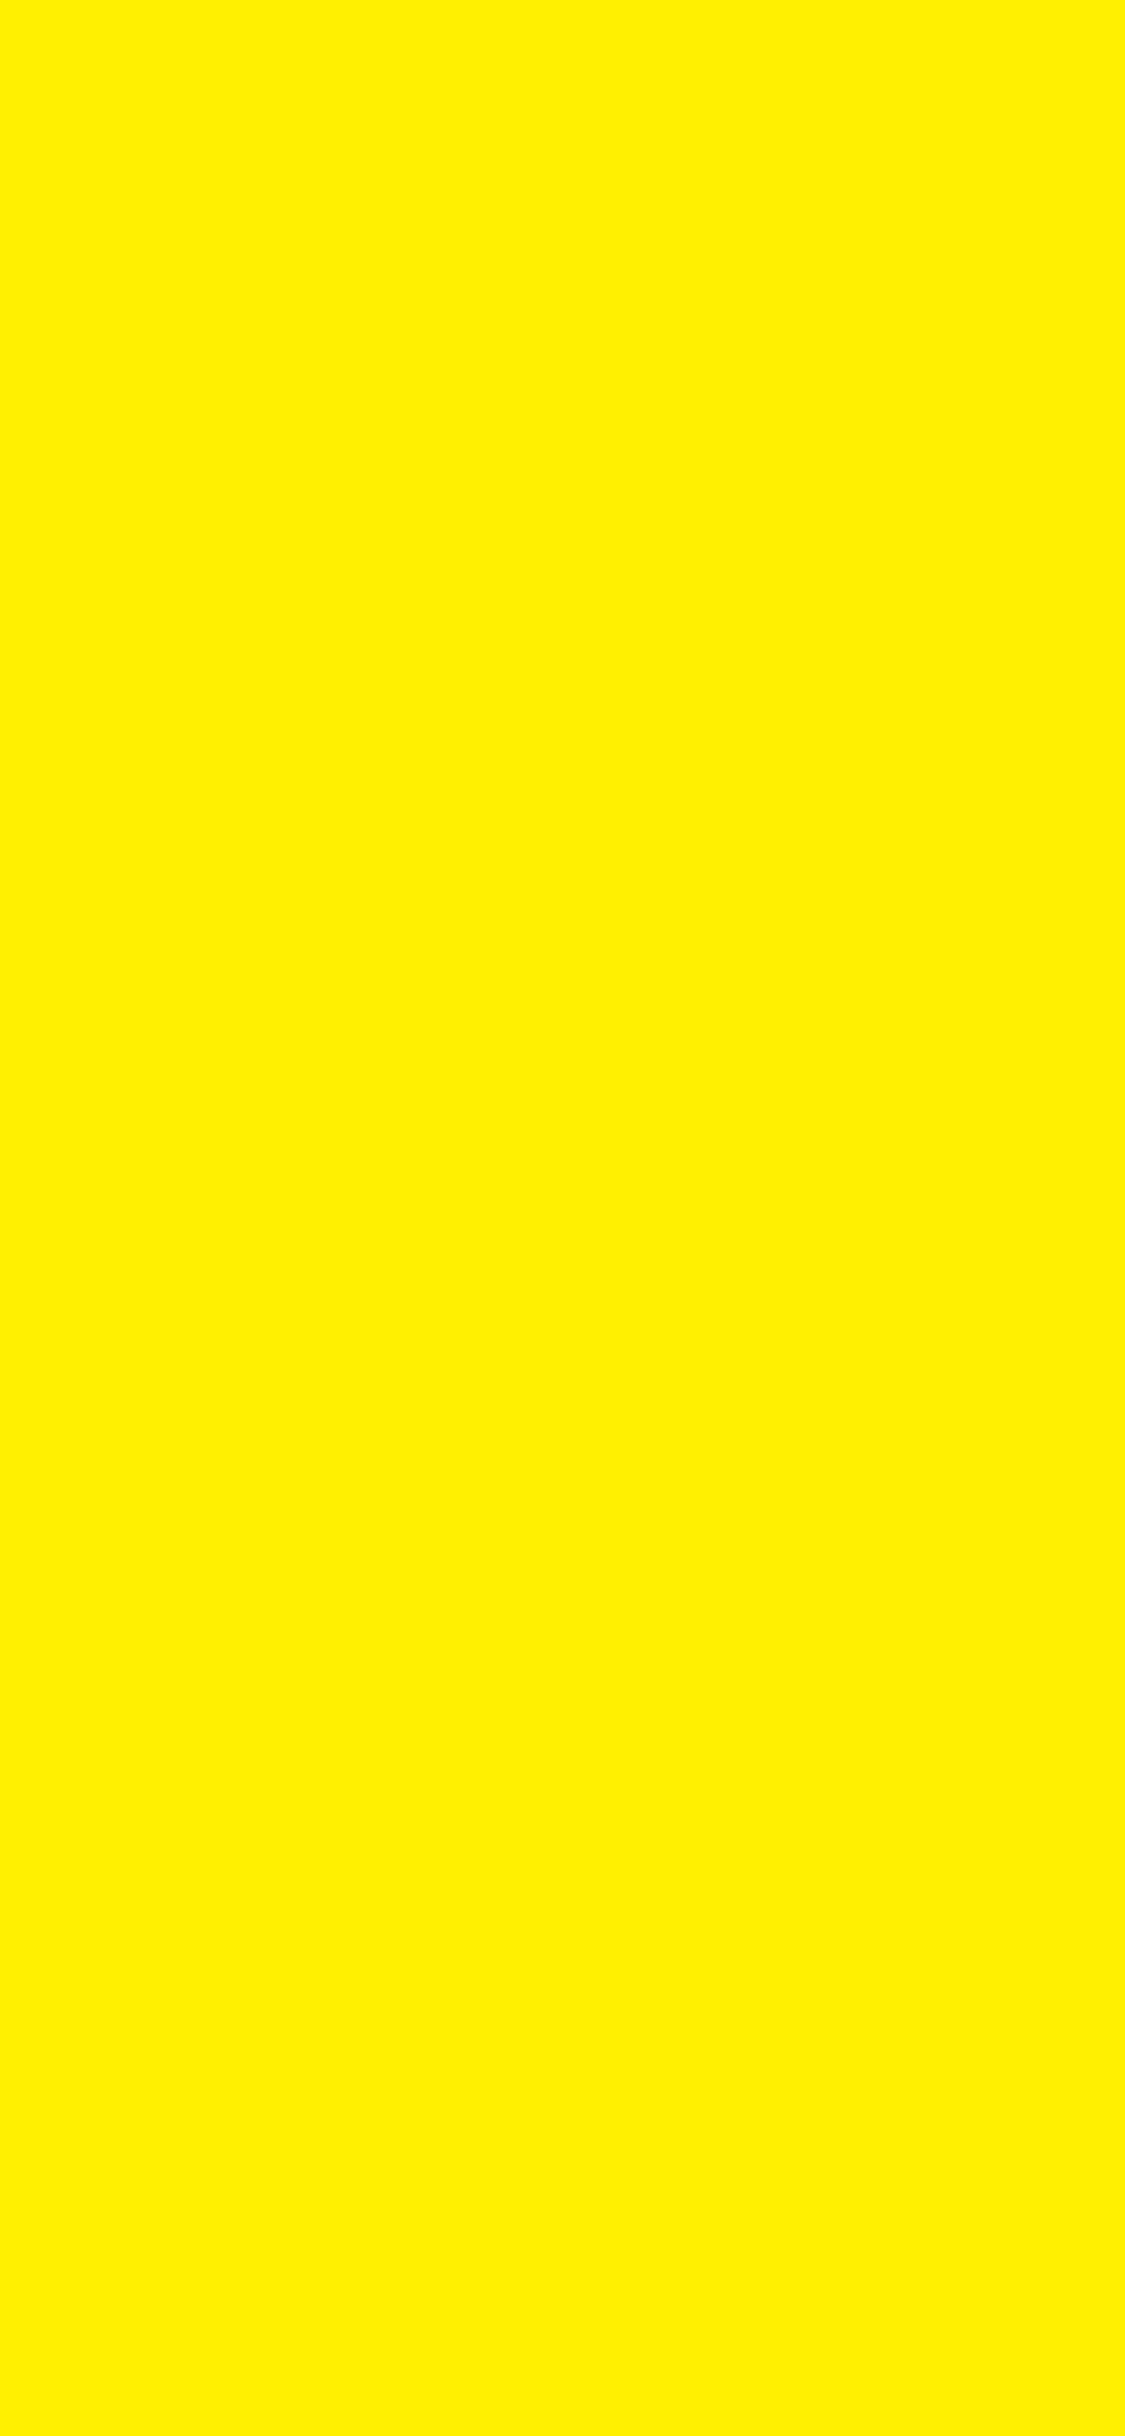 1125x2436 Canary Yellow Solid Color Background